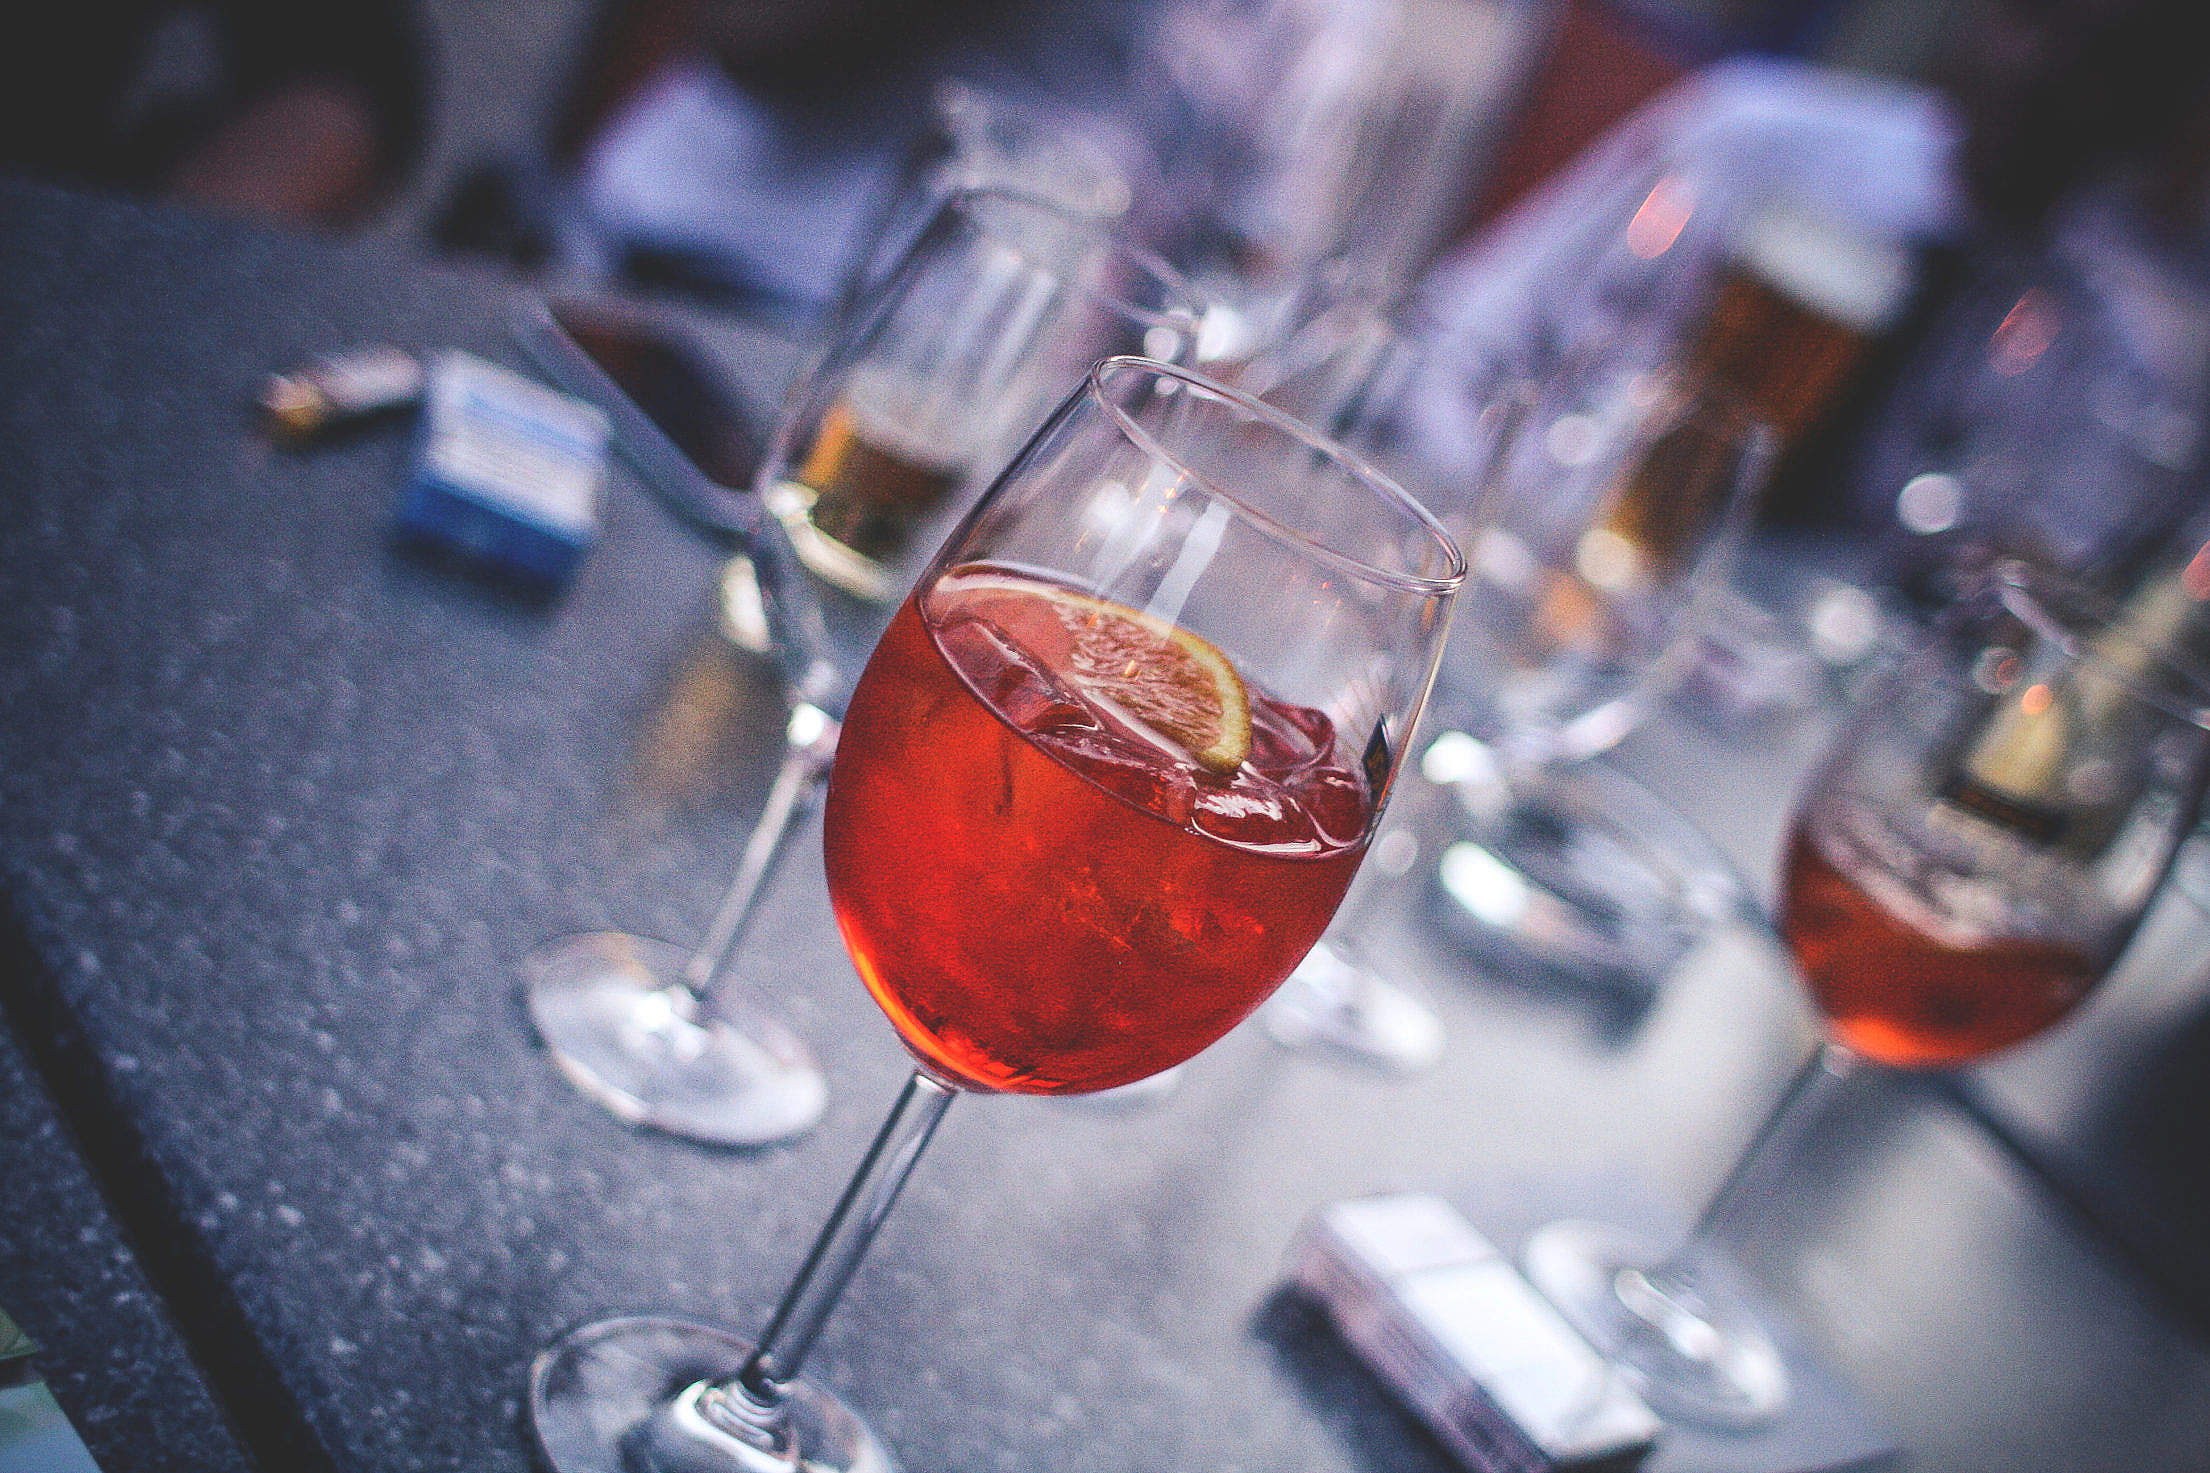 Evening Party With Aperol Spritz Free Stock Photo